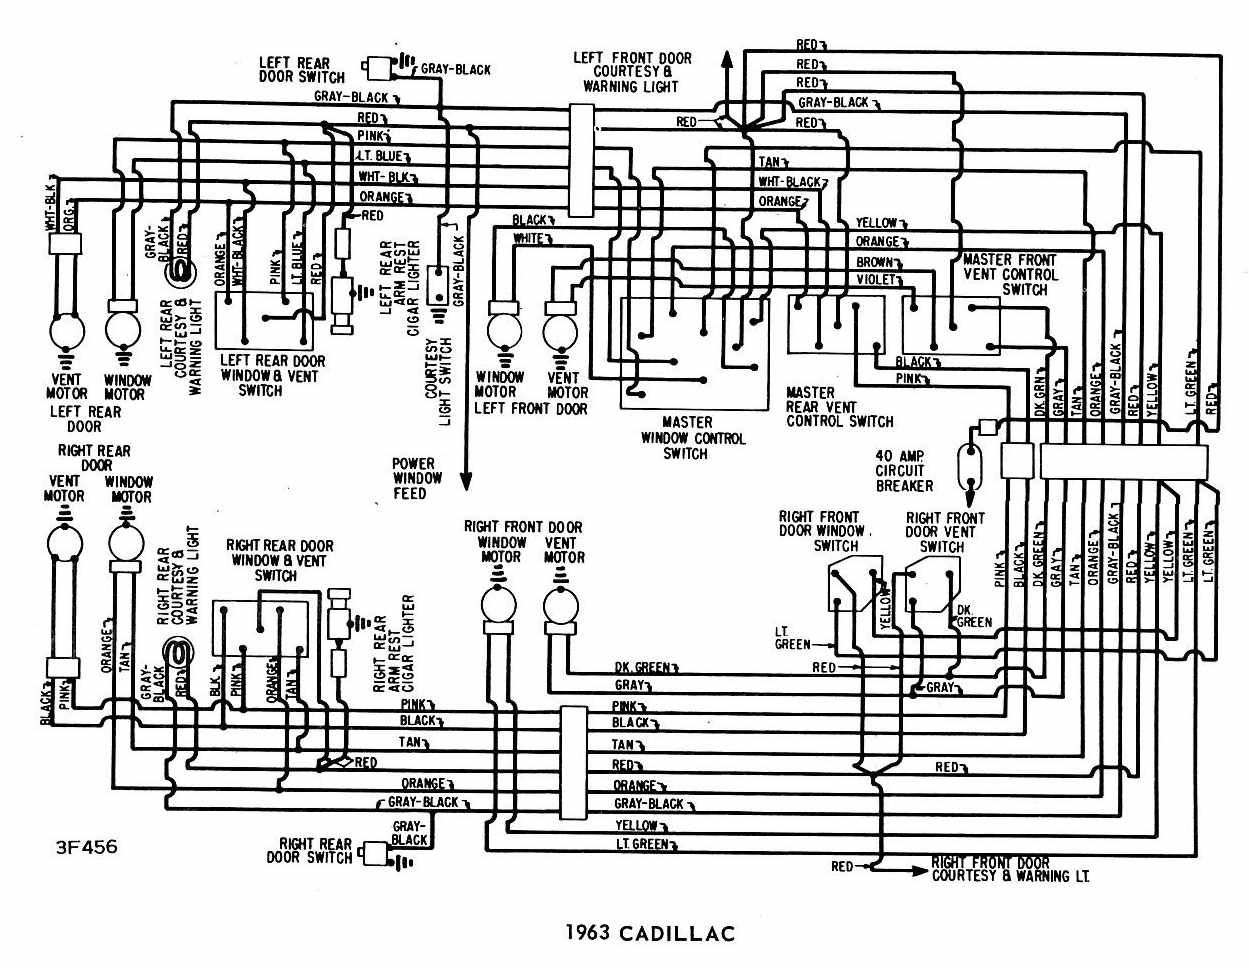 hight resolution of 1968 cadillac ac wiring diagram wiring diagram user 1968 cadillac ac wiring diagram